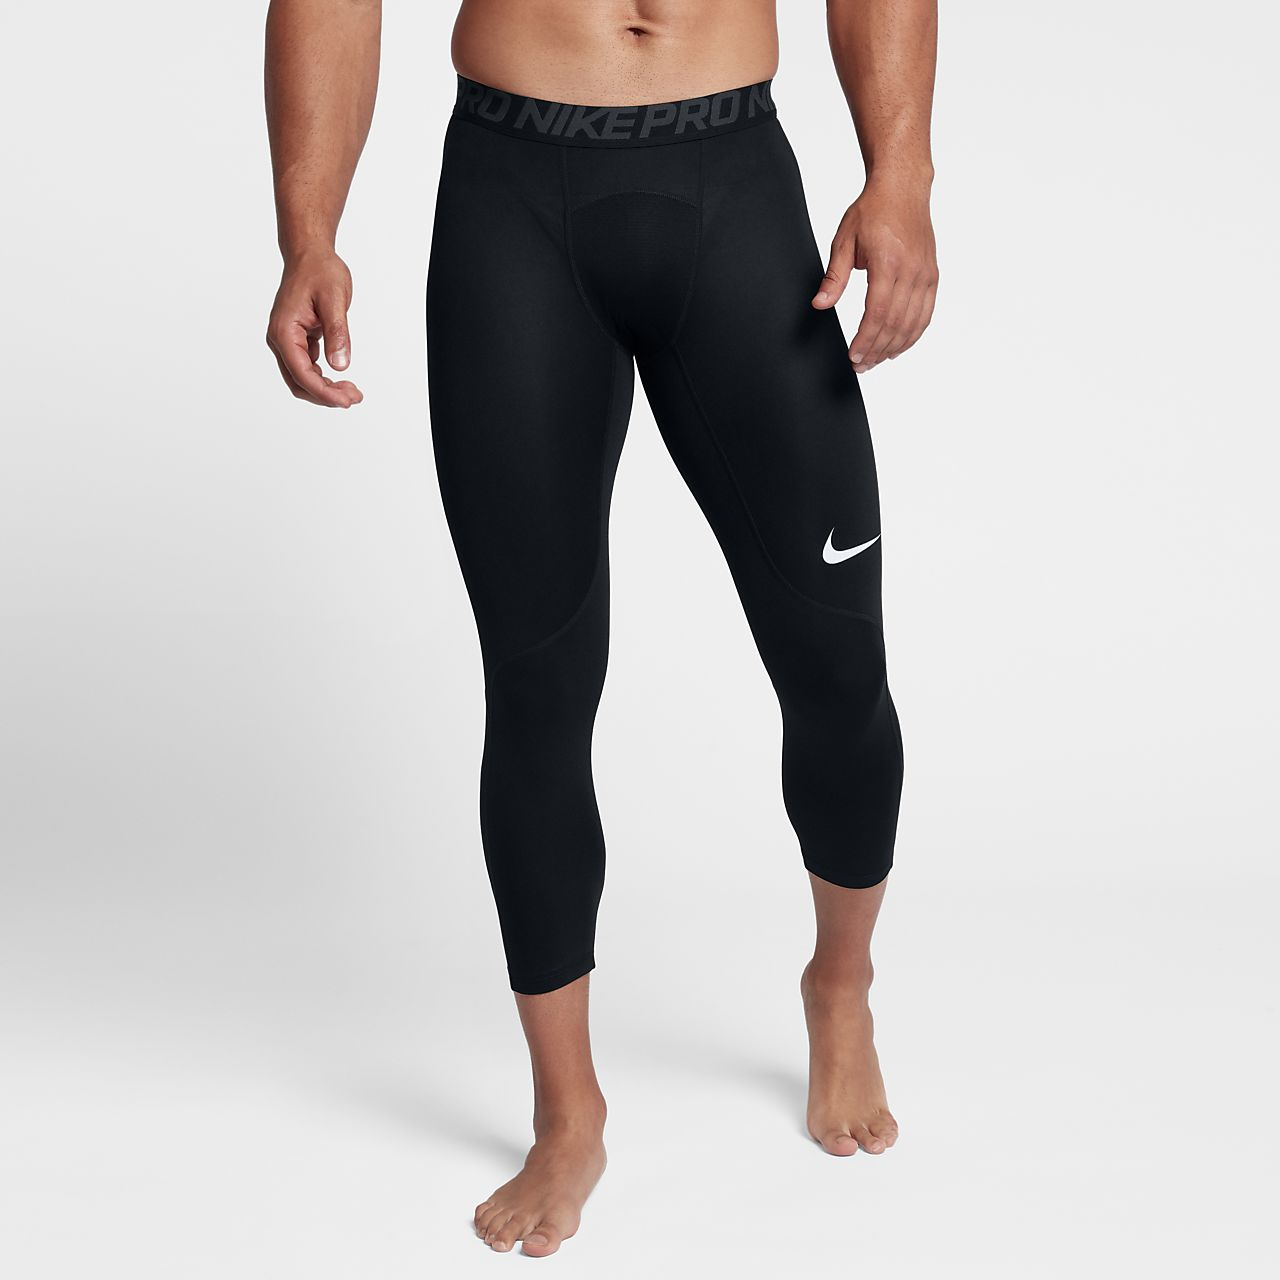 Nike Pro Men's 3/4 Training Tights